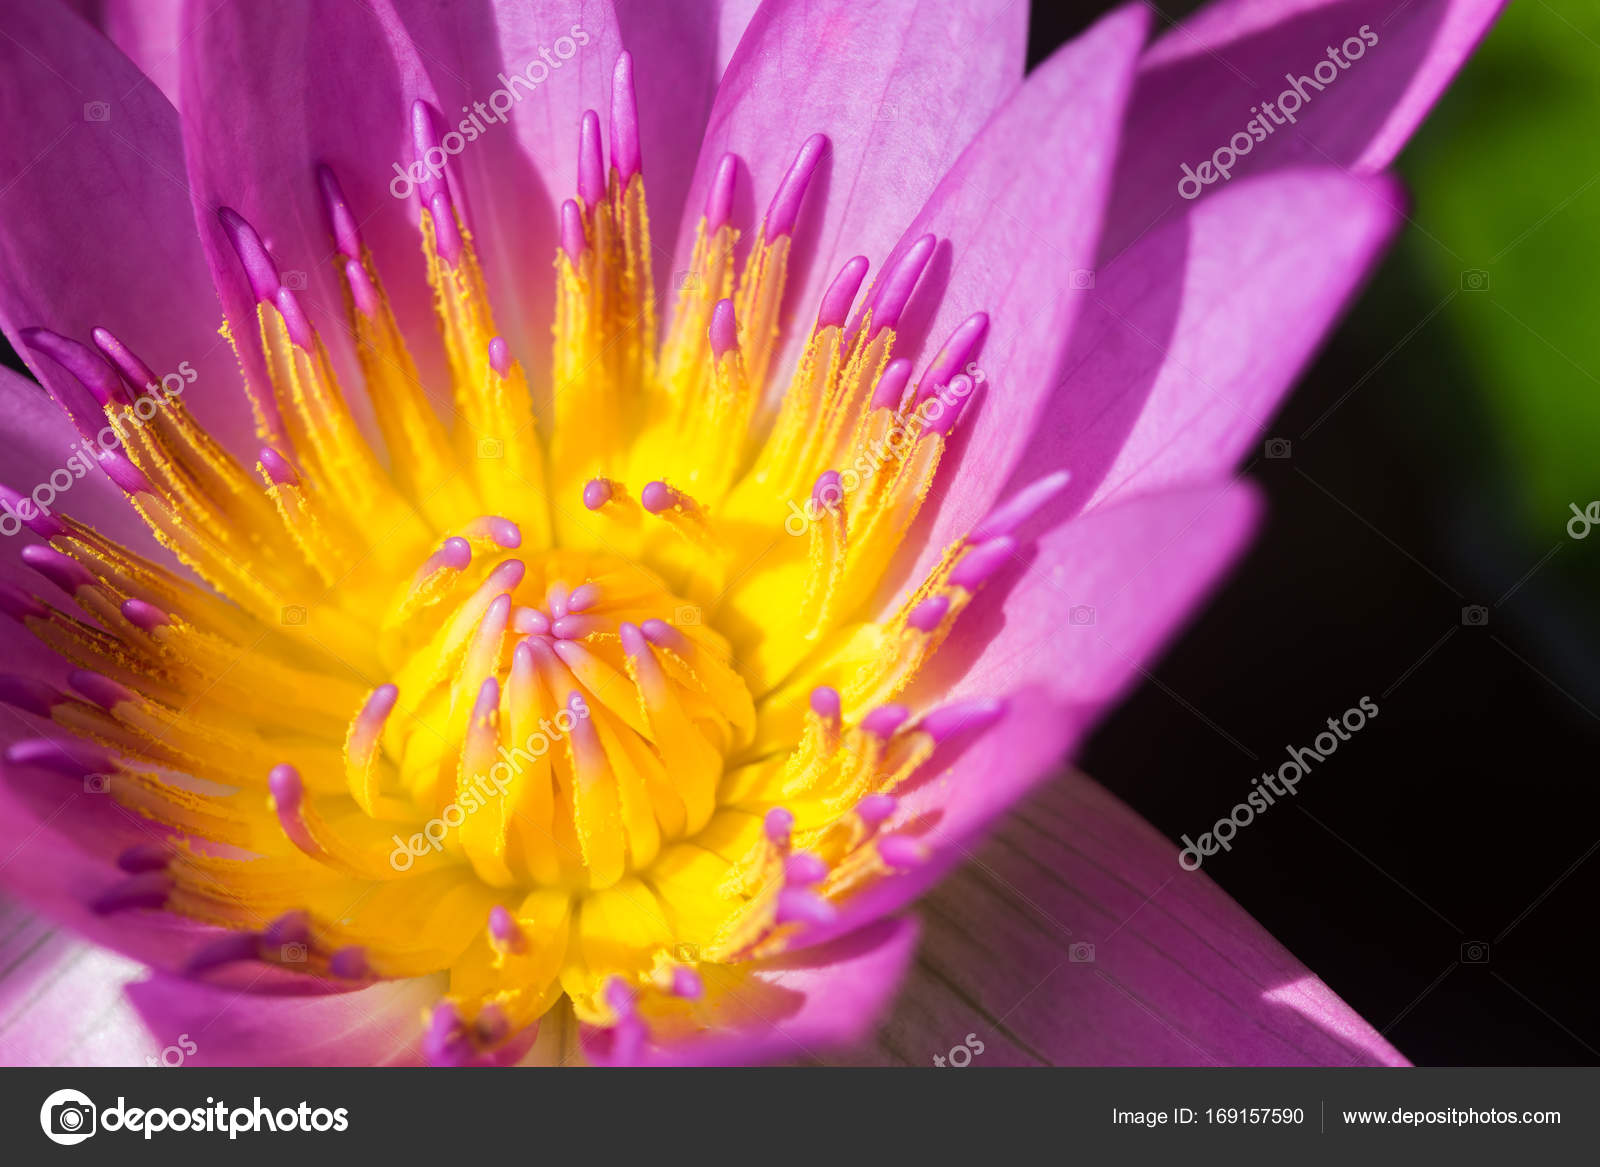 Purple lotus flower or water lily flowers stock photo purple lotus flower or water lily flowers stock photo izmirmasajfo